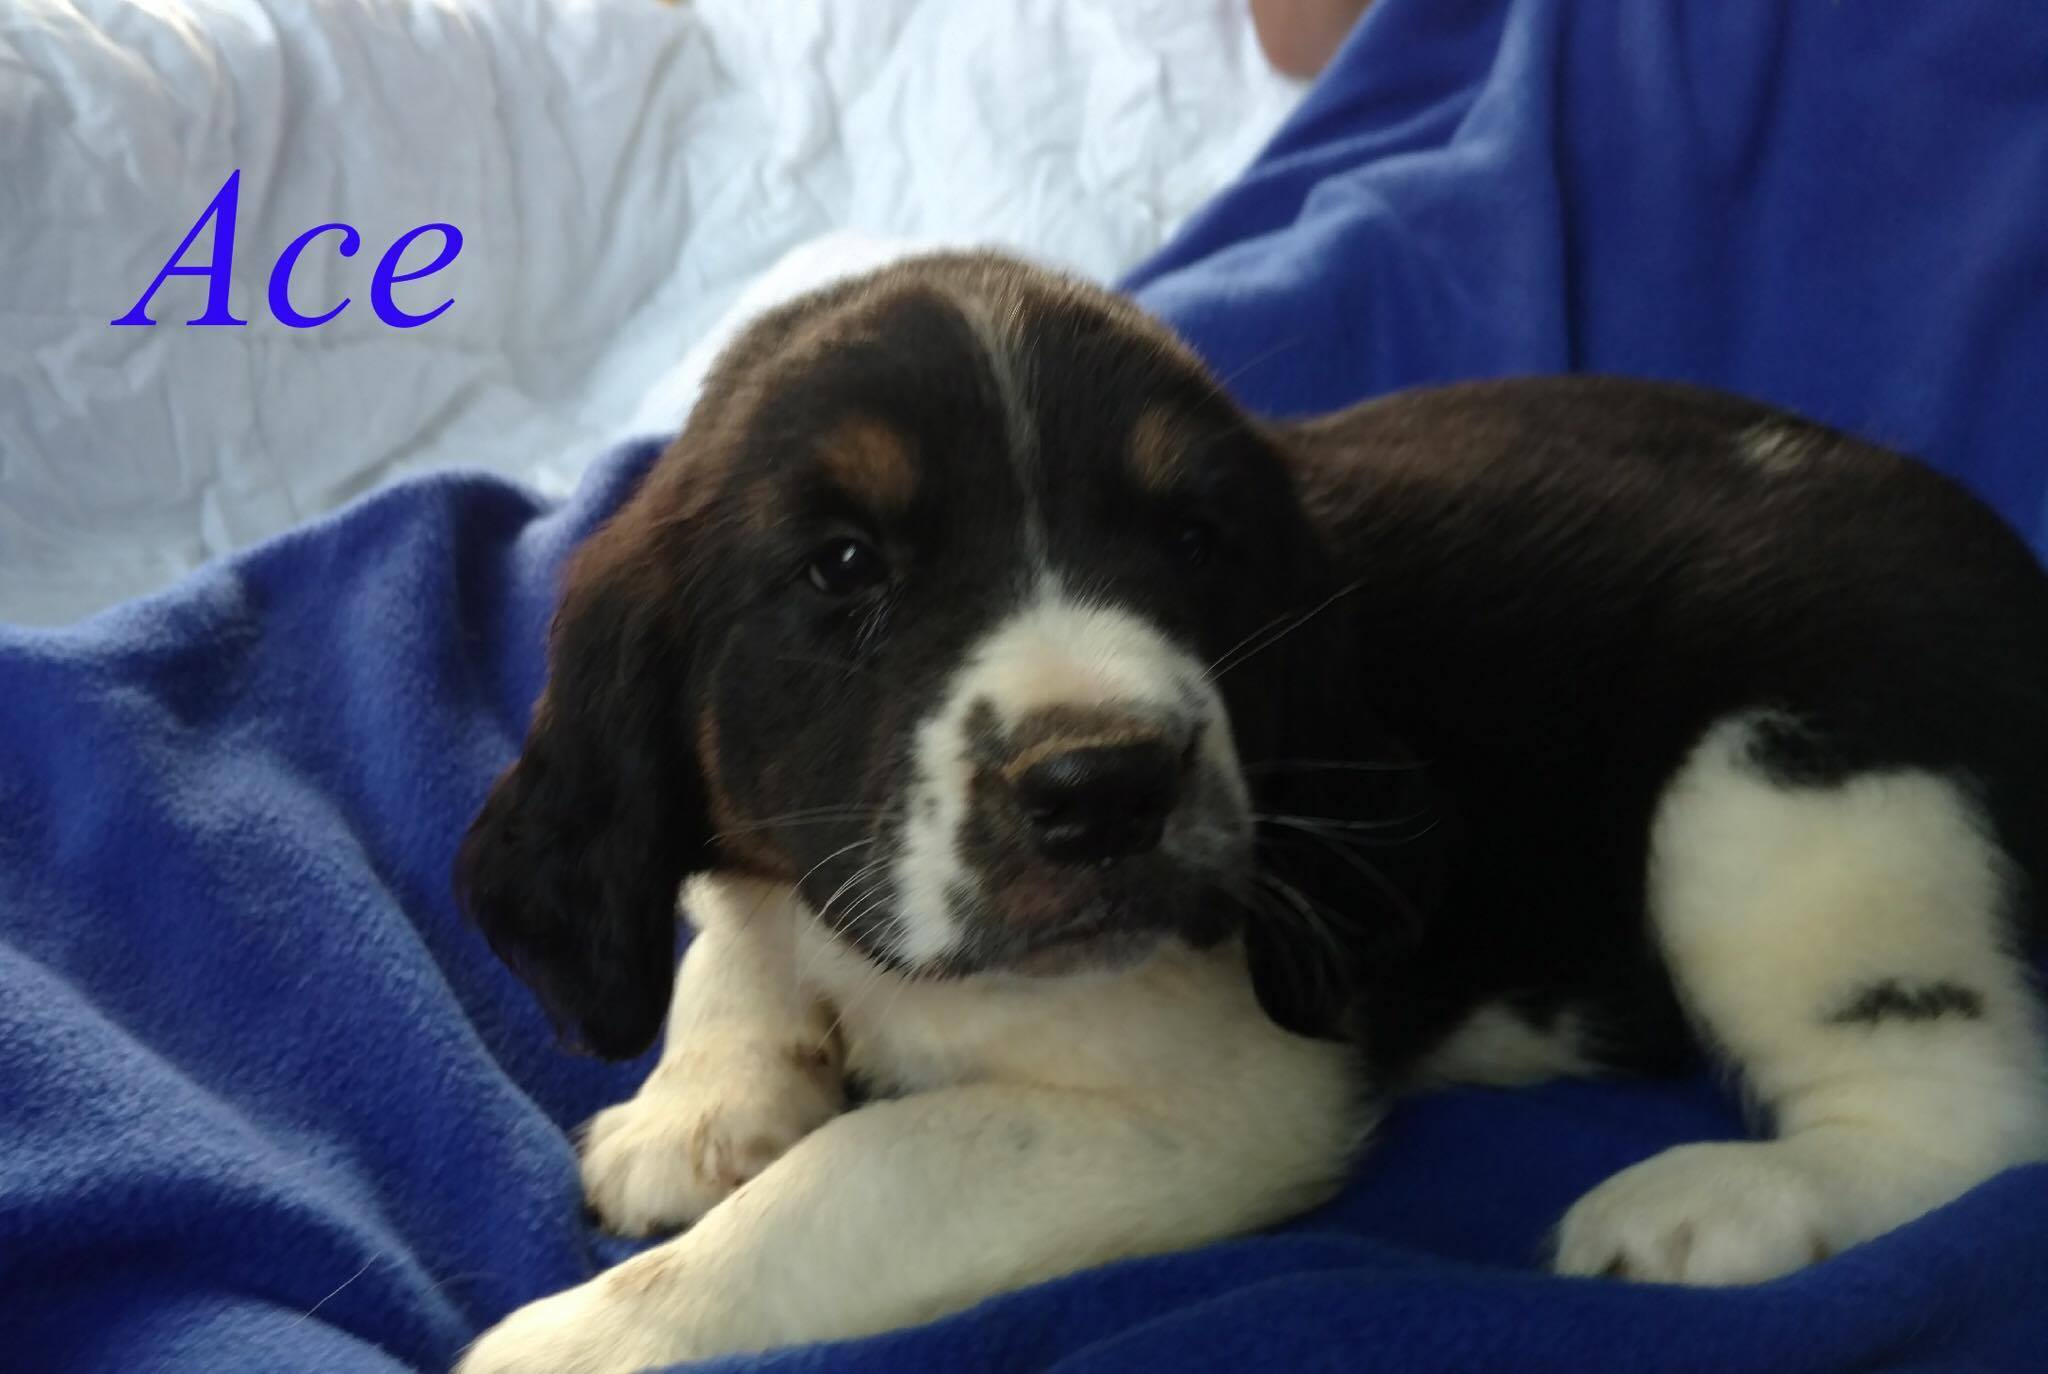 8 Parvo puppies URGENTLY need your help!